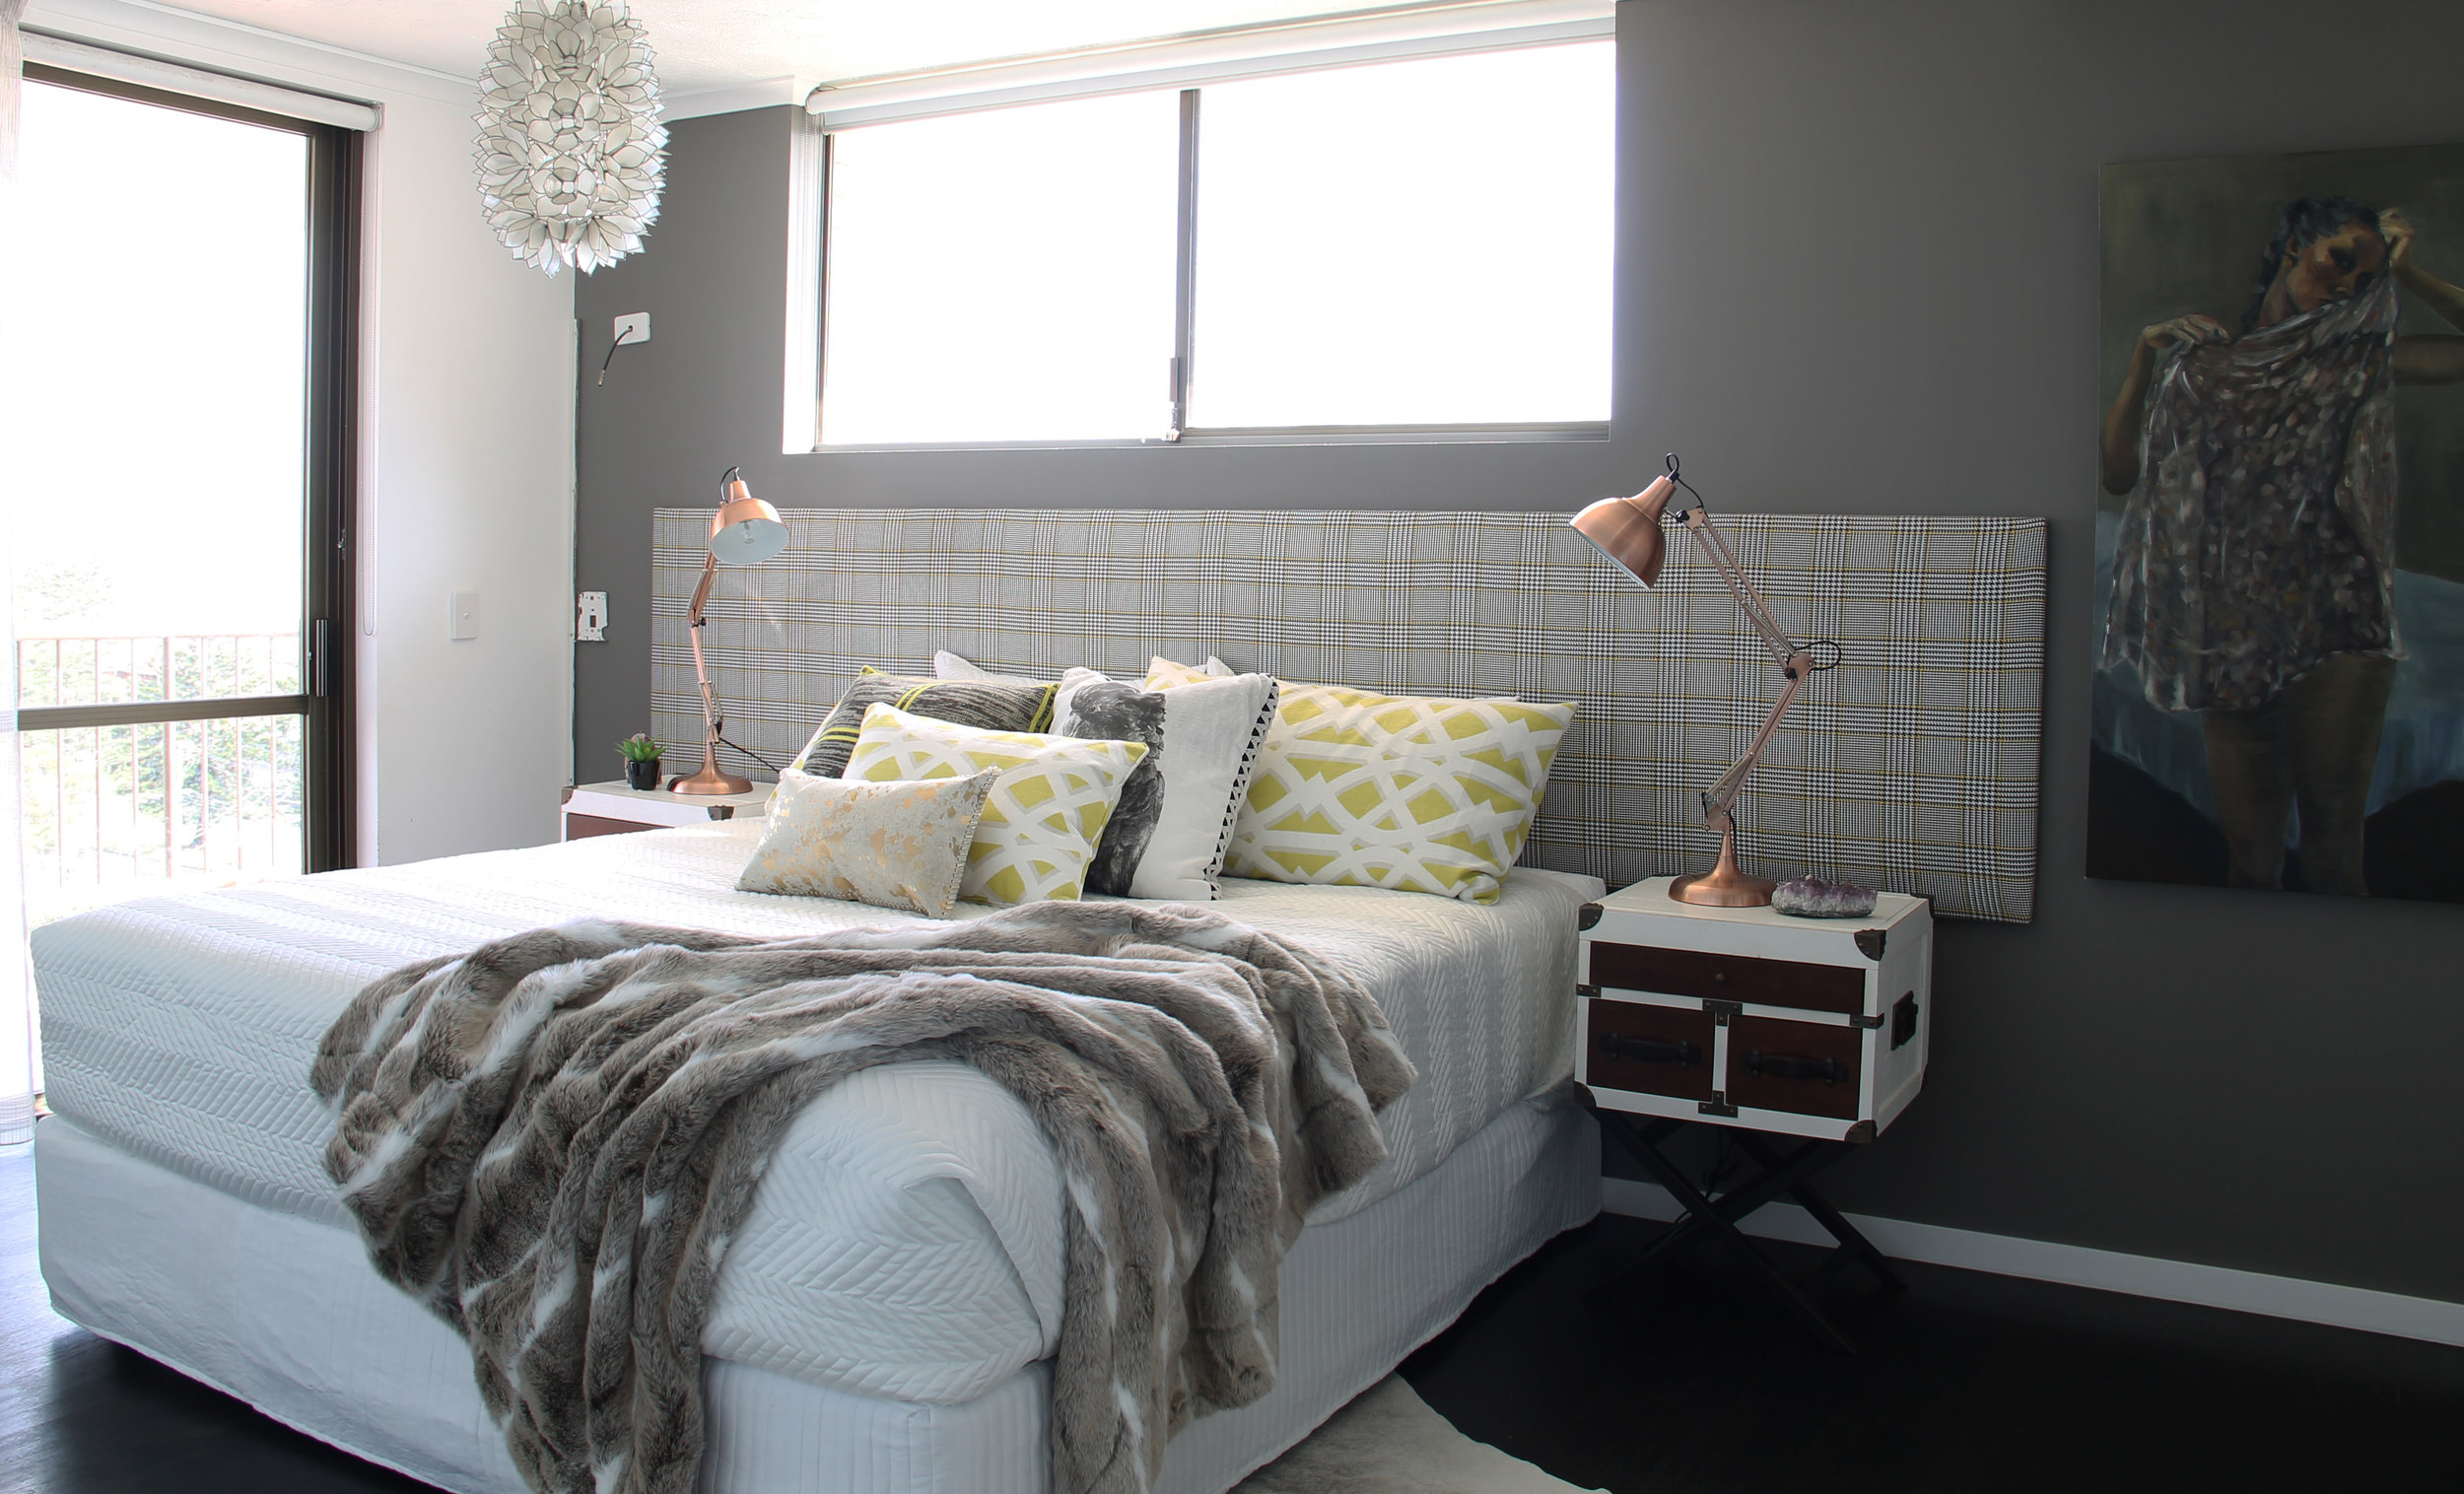 Design Scout - Interior Design - Jacinta Platt - Gold Coast Interior Designer - Photography by Tanika Blair - IMG_9274.jpg